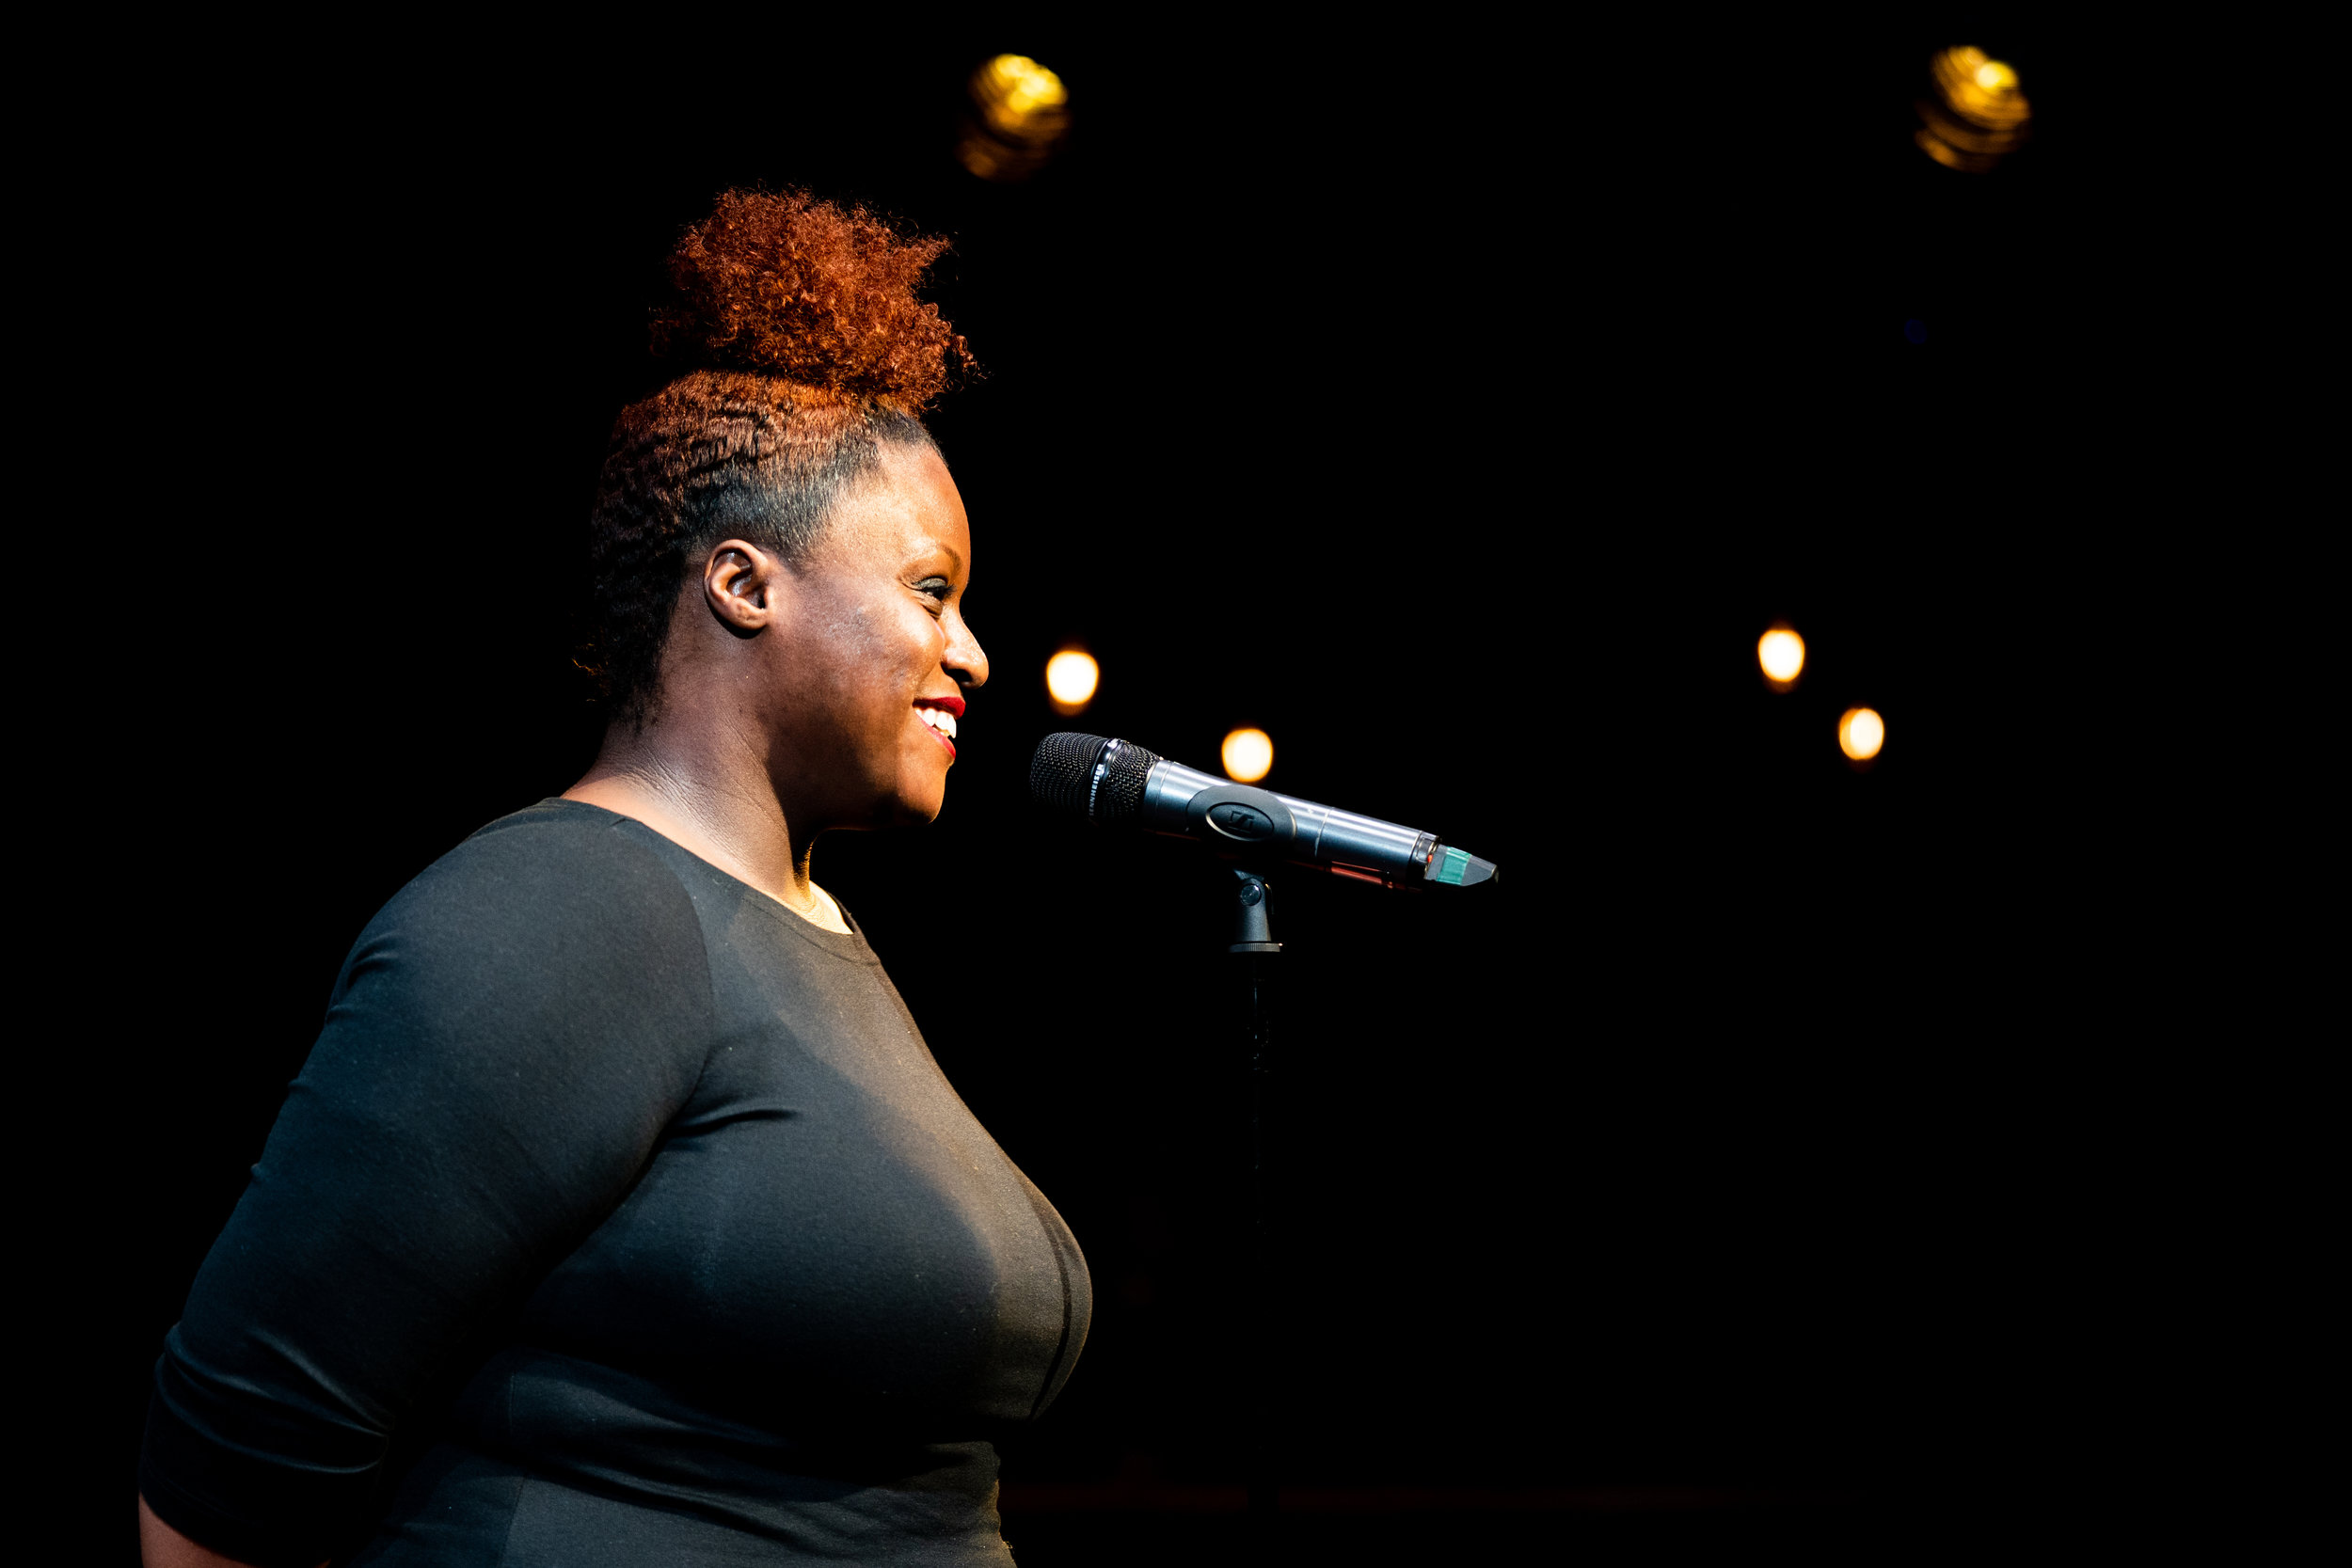 Nakeysha Roberts Washington shares her story with the Story Collider audience at Caveat in New York City in March 2019. Photo by Zhen Qin.